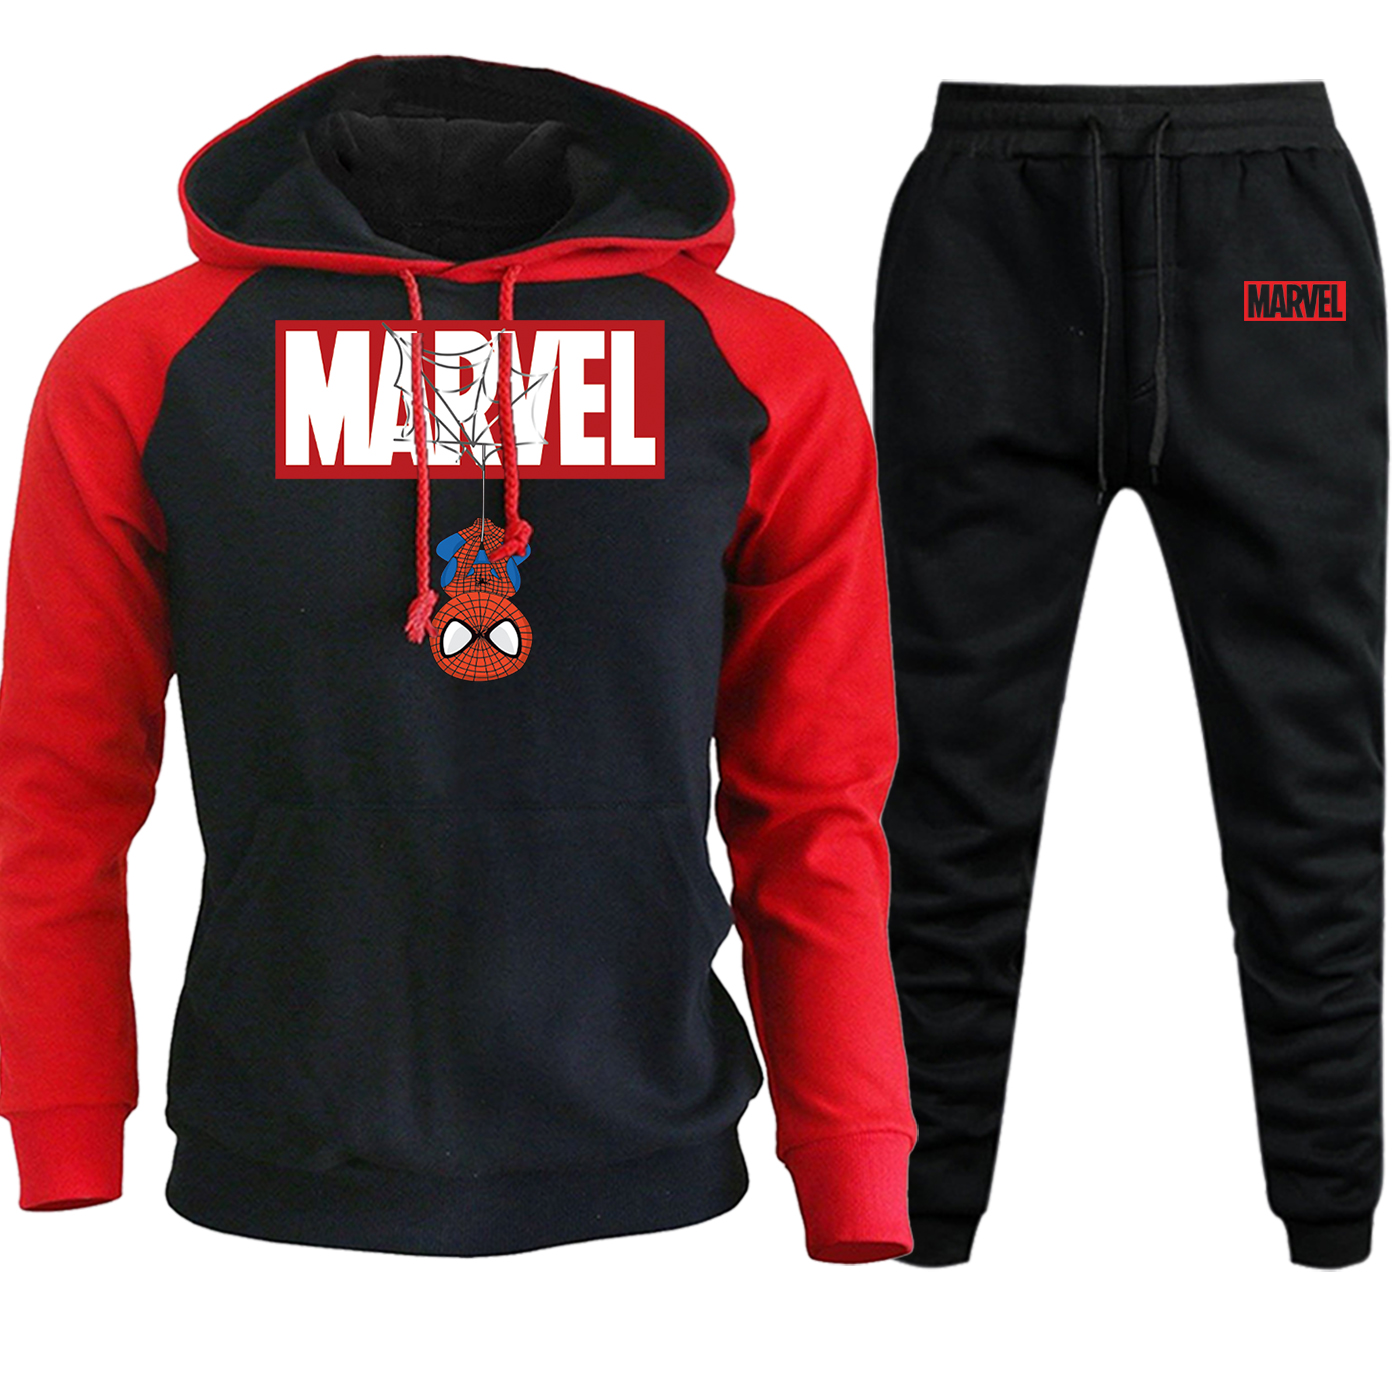 Spiderman Autumn Hot Sale Hooded Mens Sweatshirts Raglan Marvel Casual Pullover Suit Streetwear Hoodie+Sweatpants 2 Piece Set